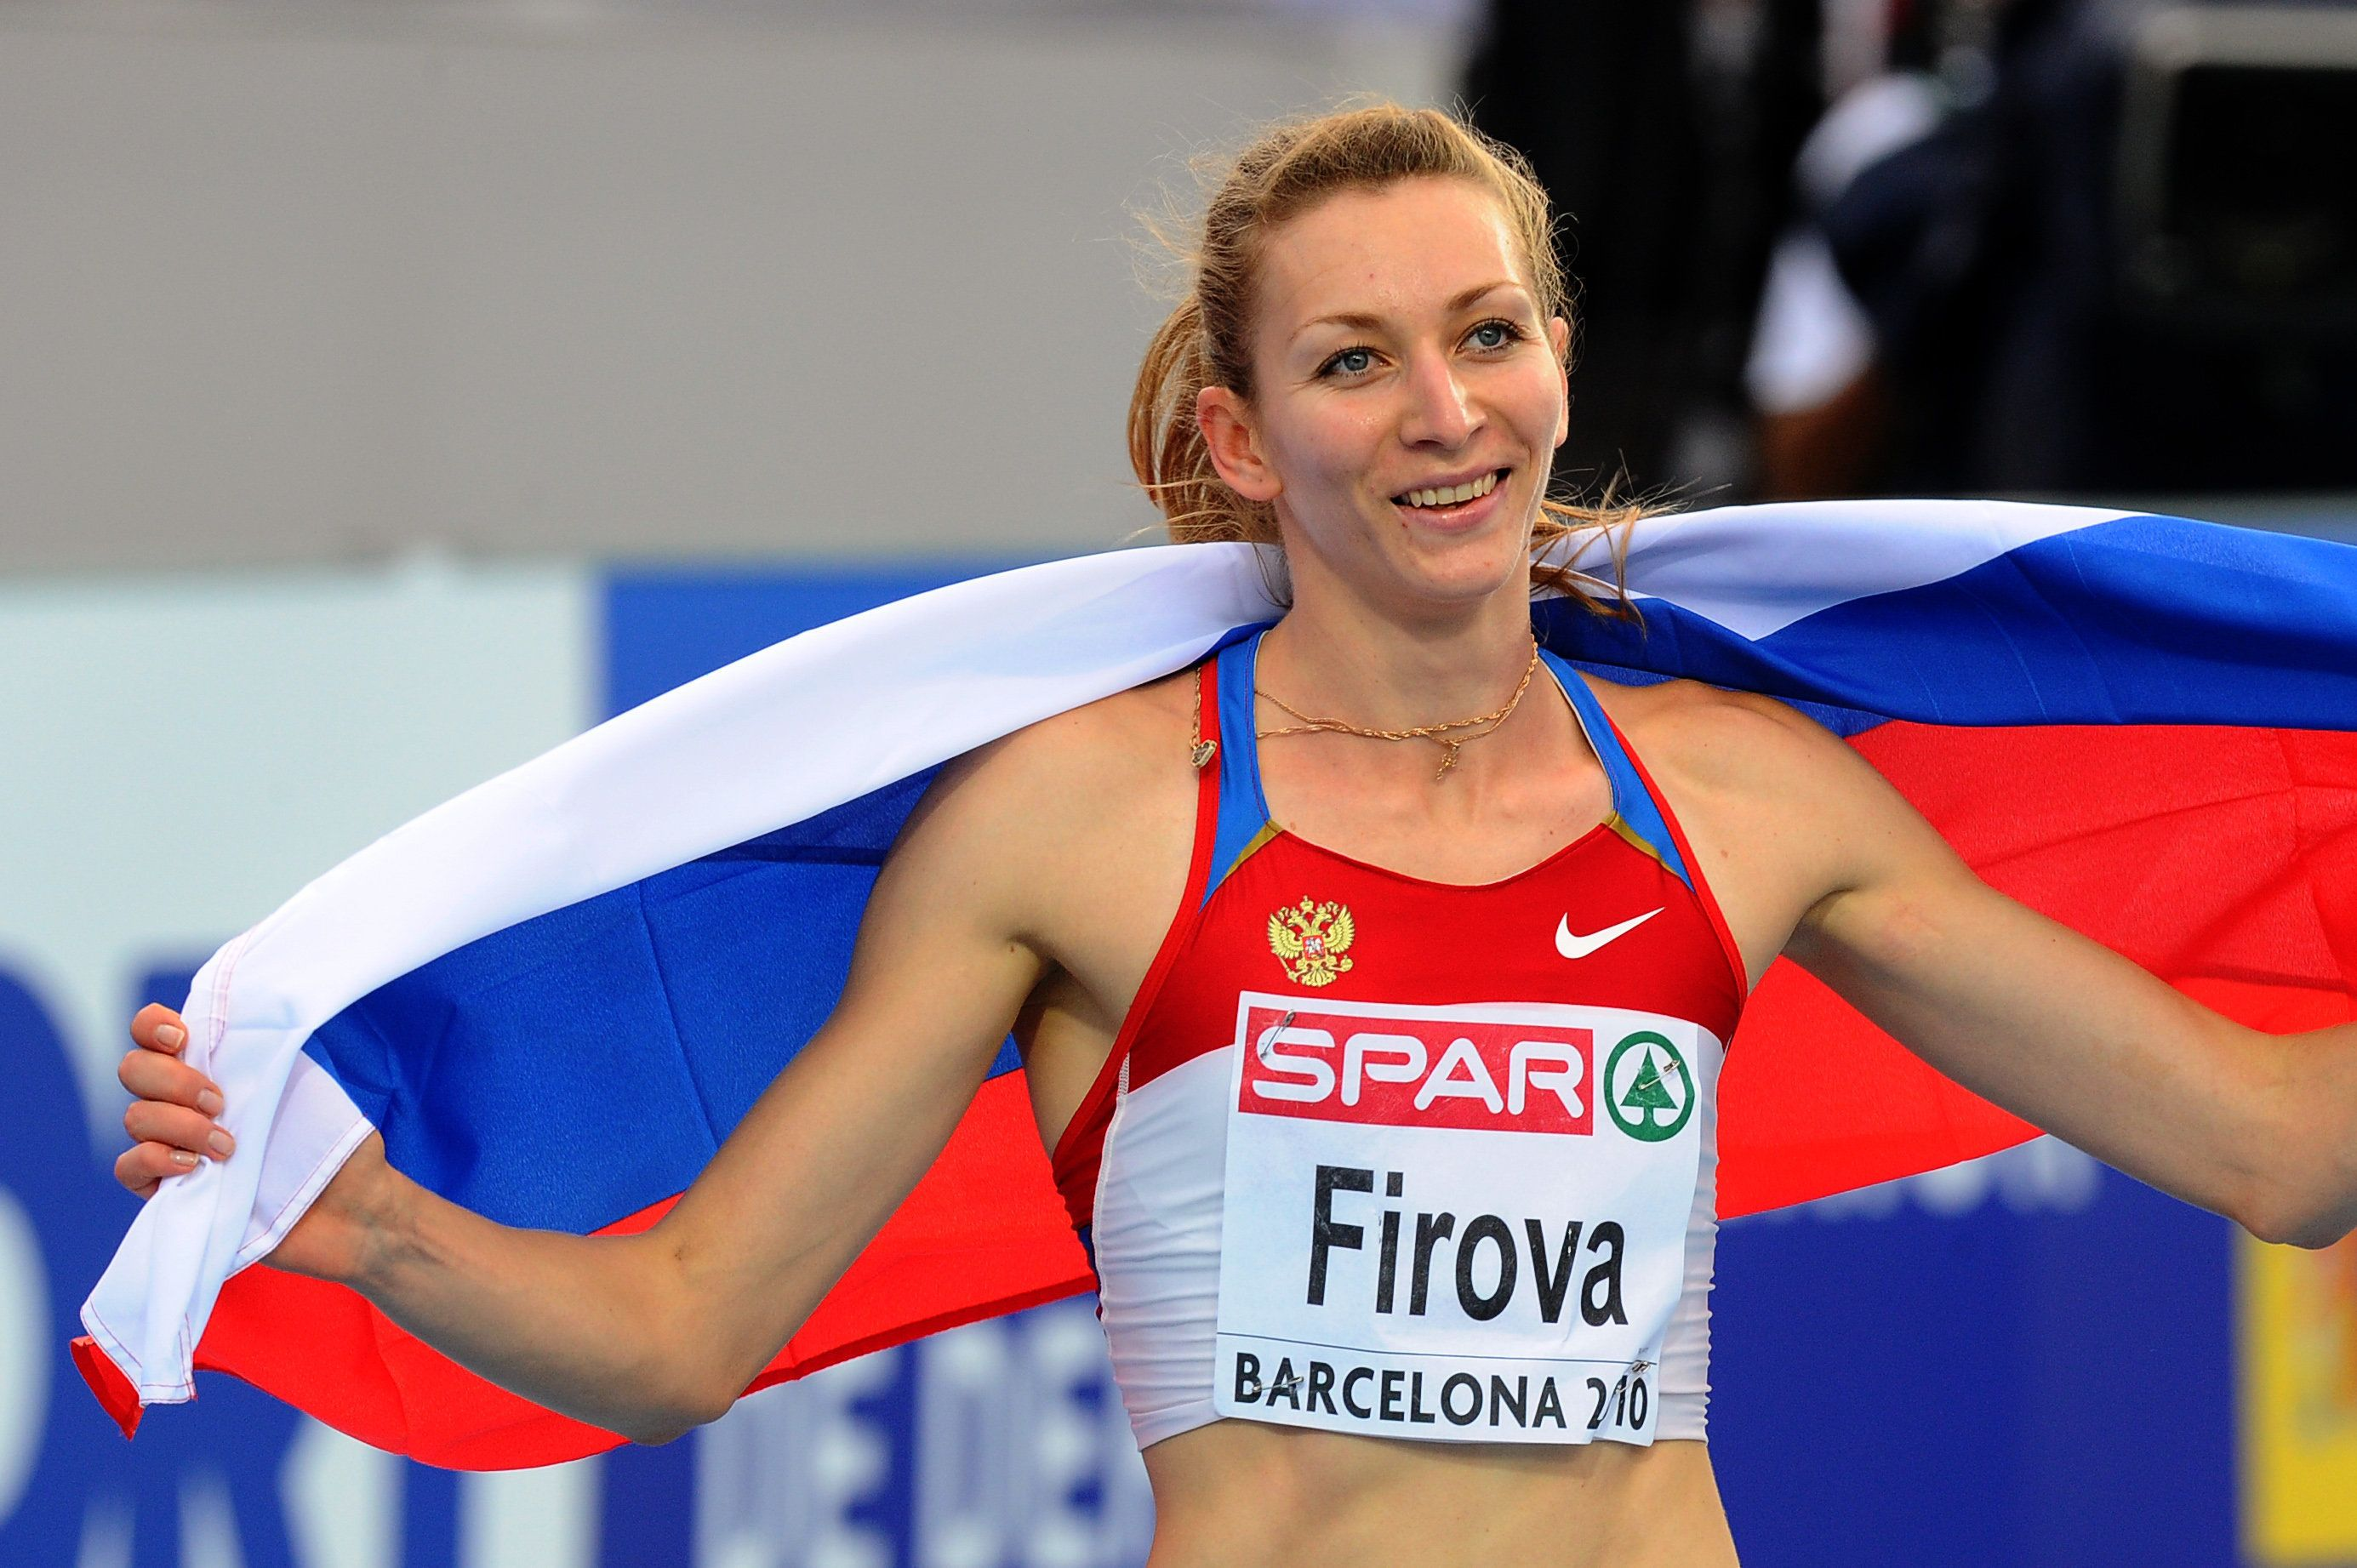 Russian sprinter Tatyana Firova, who won silver medals at the Beijing and London Olympics, has refused to return them. The ho